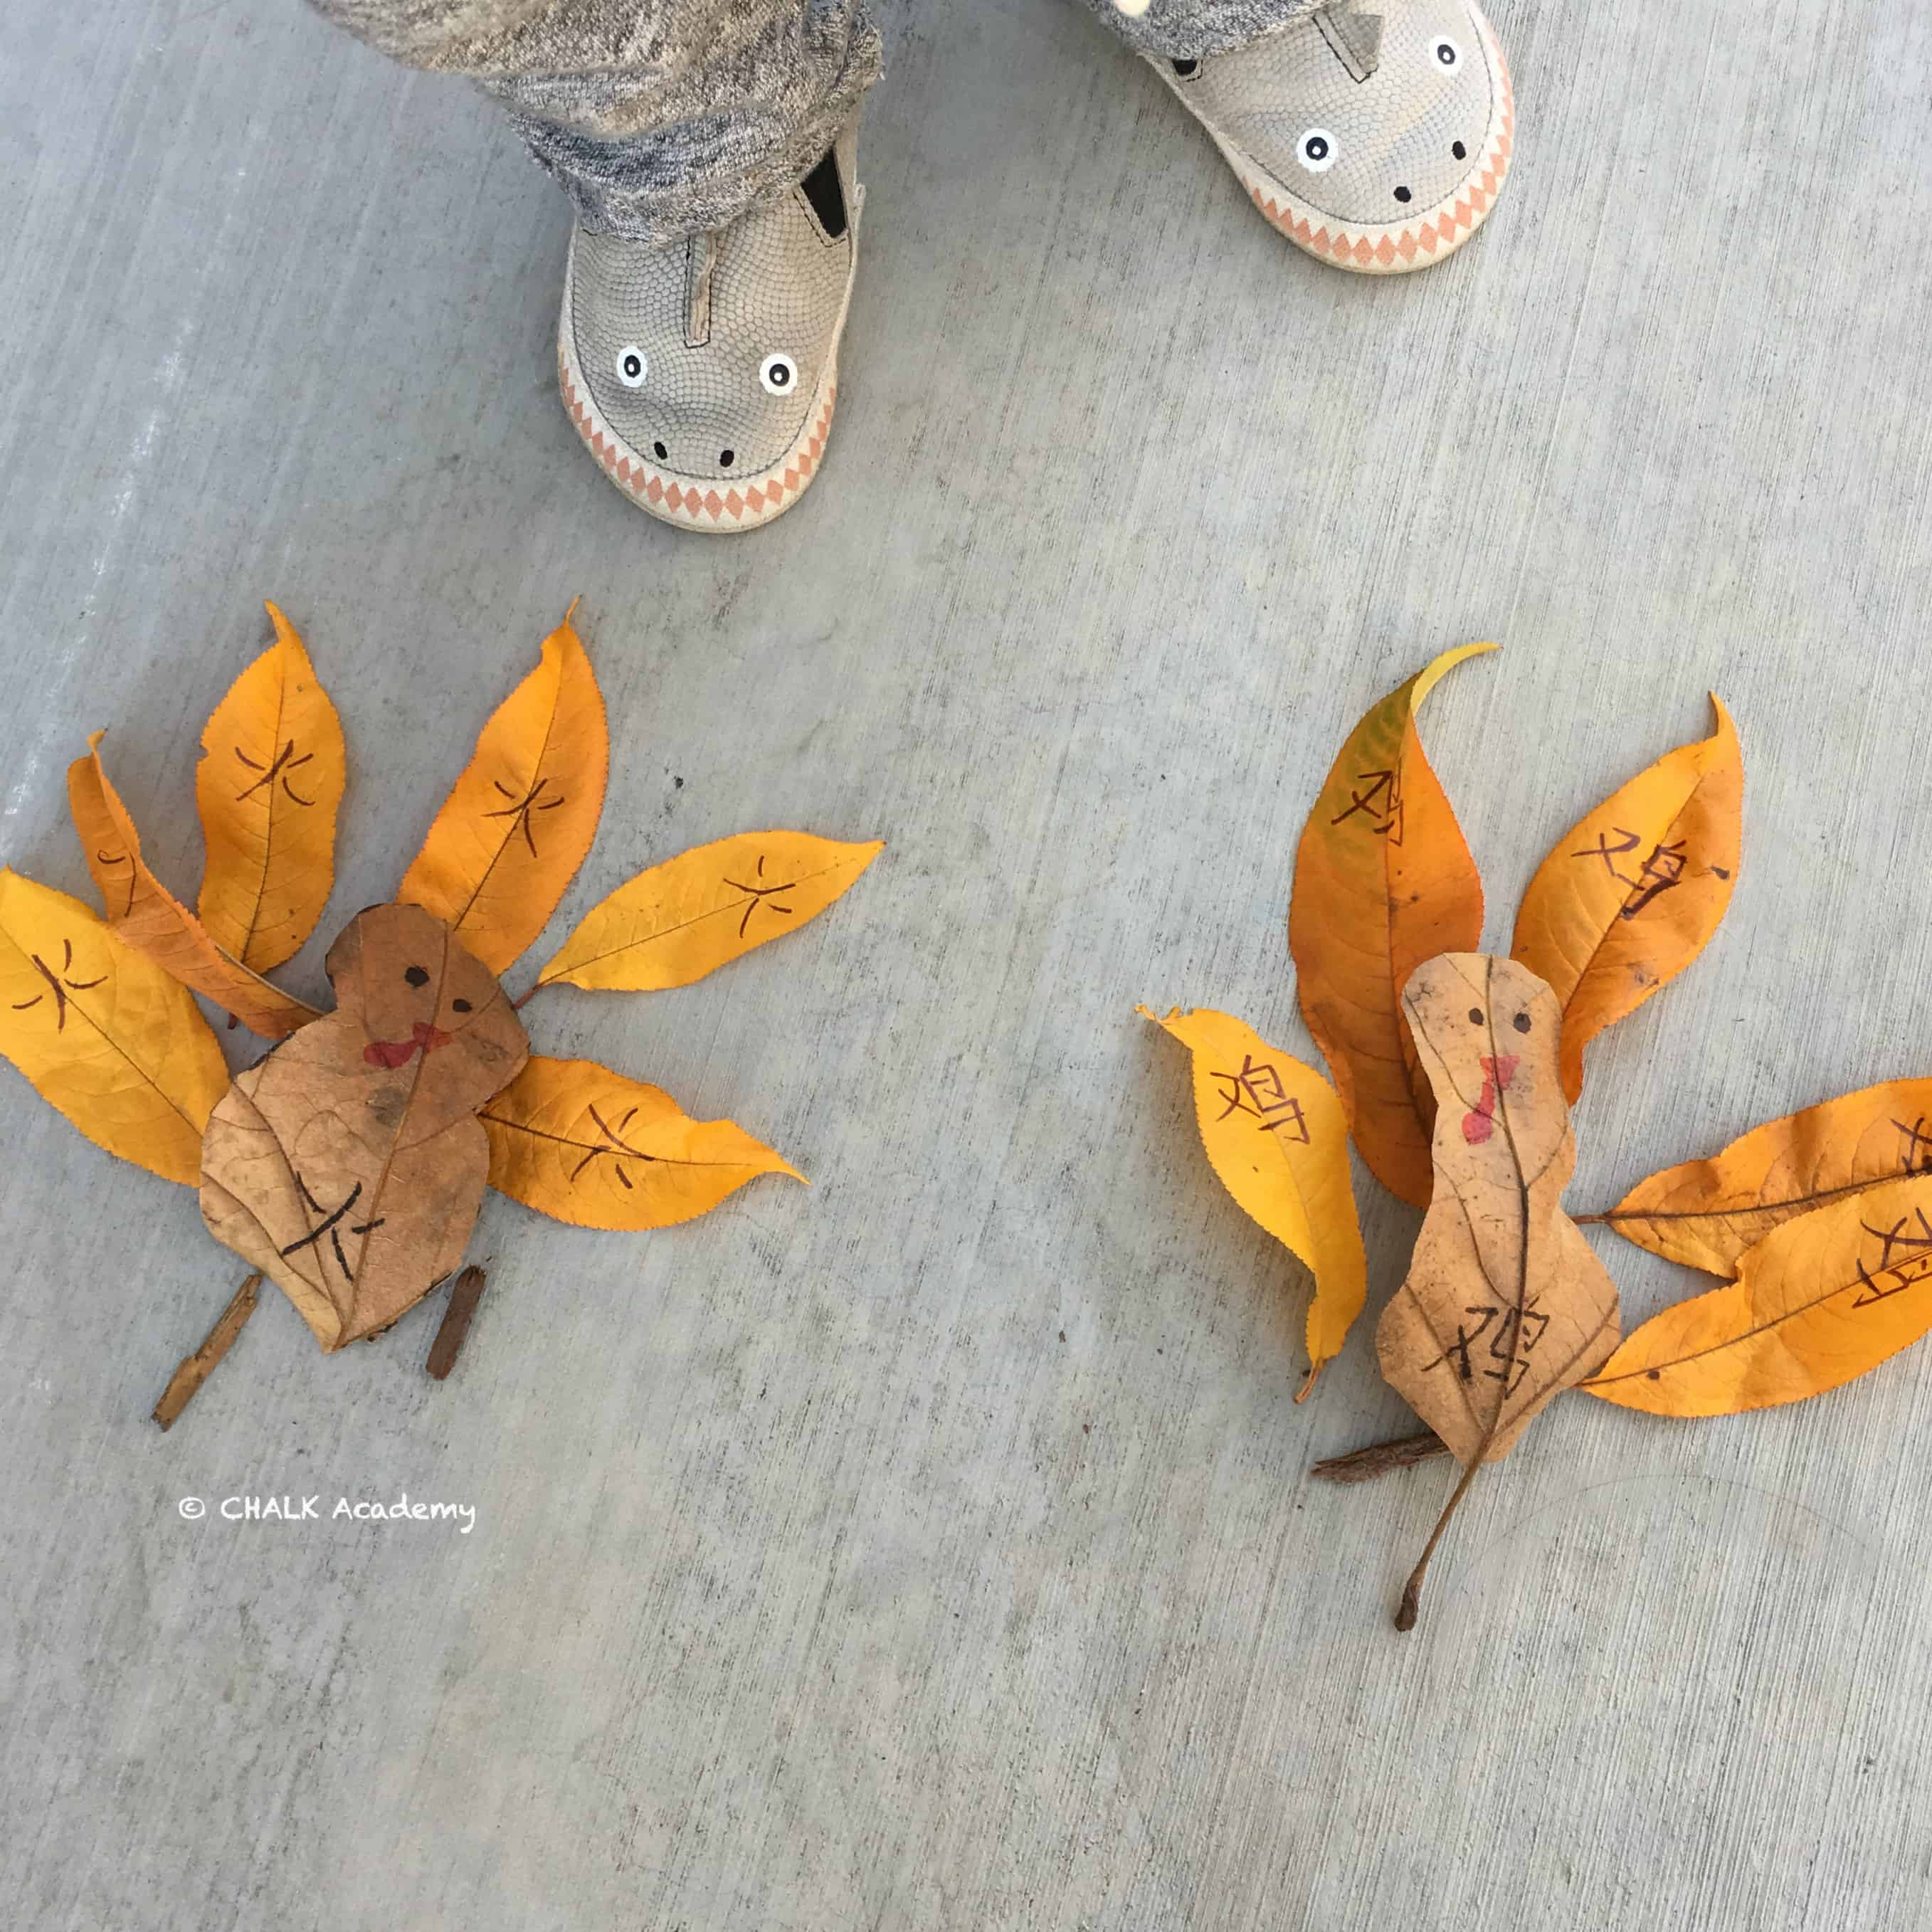 Chinese Thanksgiving Activity: Make a Turkey with Leaves